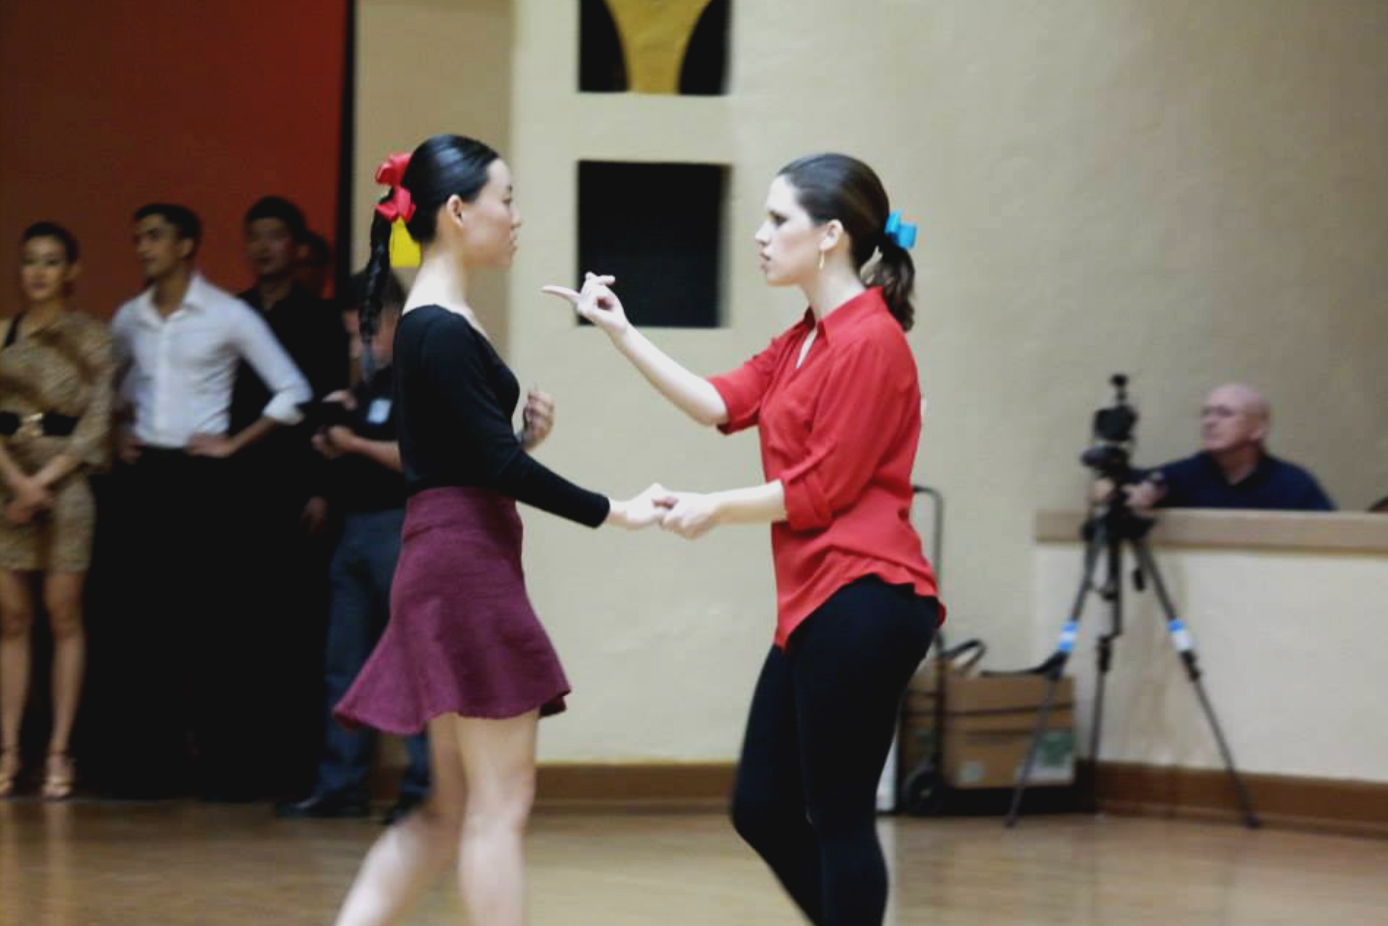 """I am wearing a red button-down, black leggings, and a ponytail with a teal bow. Yibing, a young woman with light skin, black hair in a fishtail braid, and a red bow, is wearing a black leotard and burgundy skirt. We are dancing, and I am making a """"come hither"""" gesture at her."""